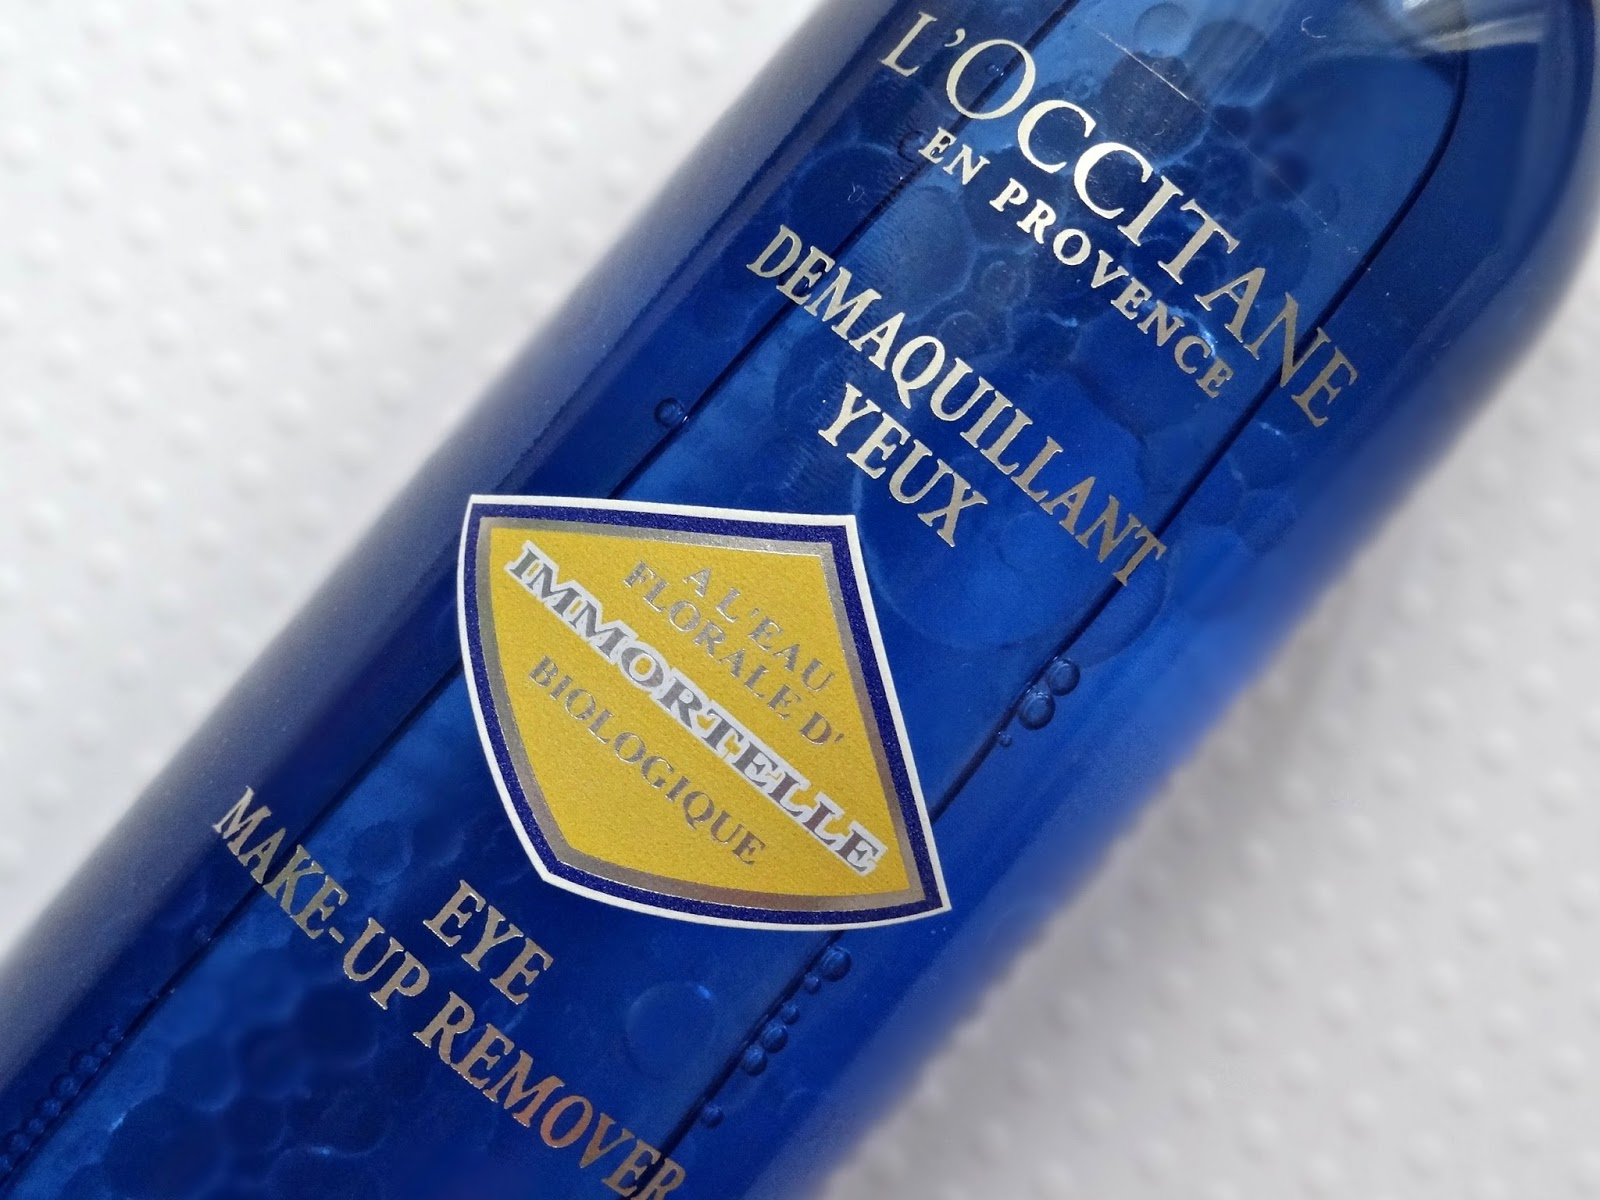 L'Occitane Immortelle Eye Makeup Remover